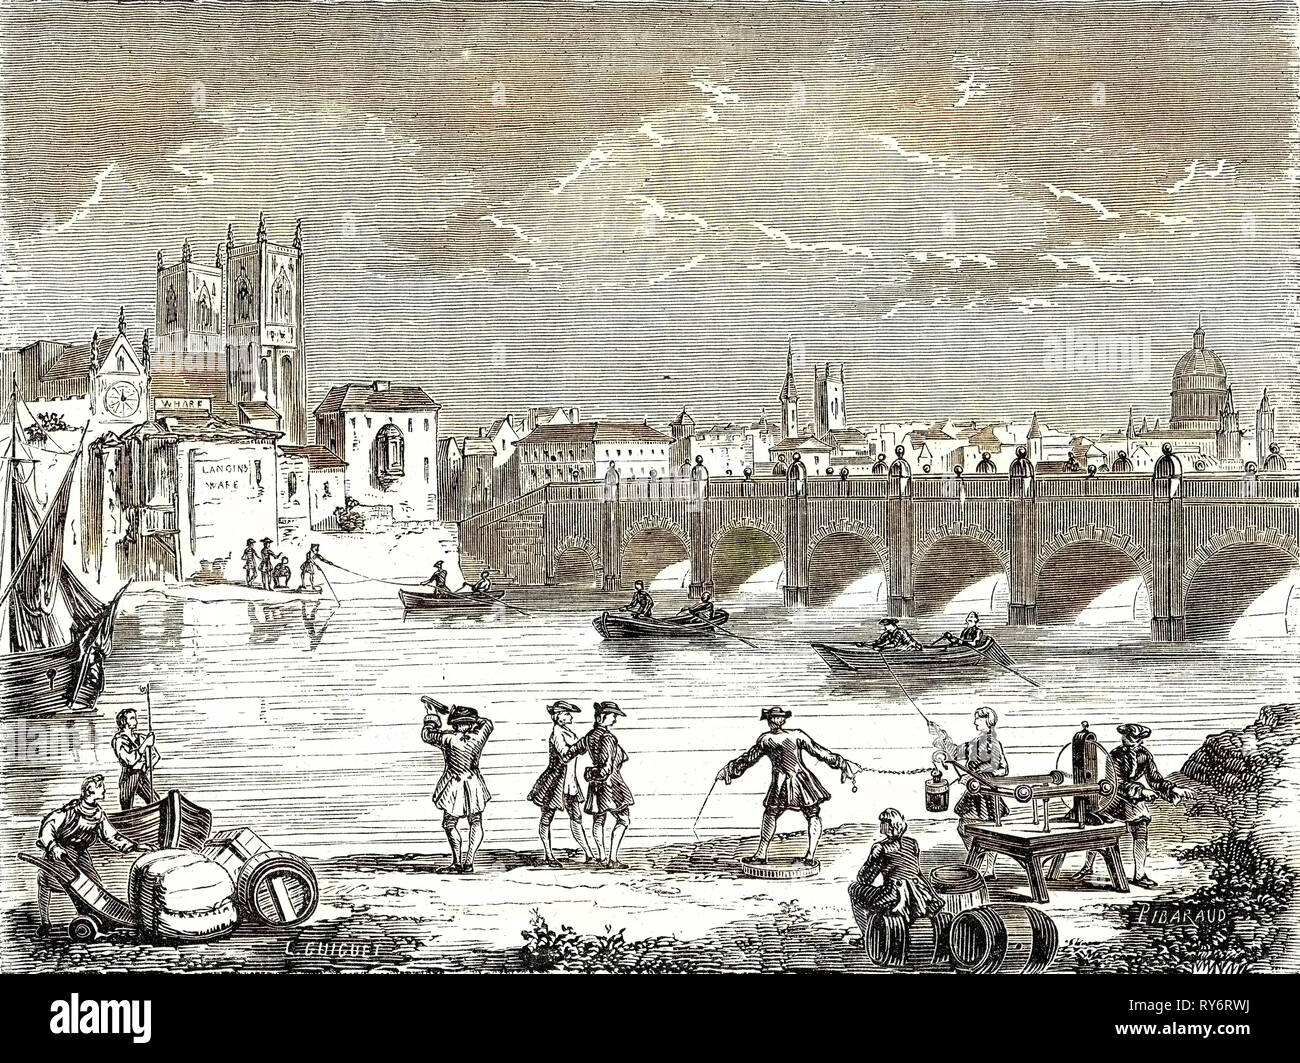 Experiment Conducted in 1747 on the Thames by Martin Folcker Cavendish and Bevis Near London Bridge to Measure the Speed of Electricity - Stock Image